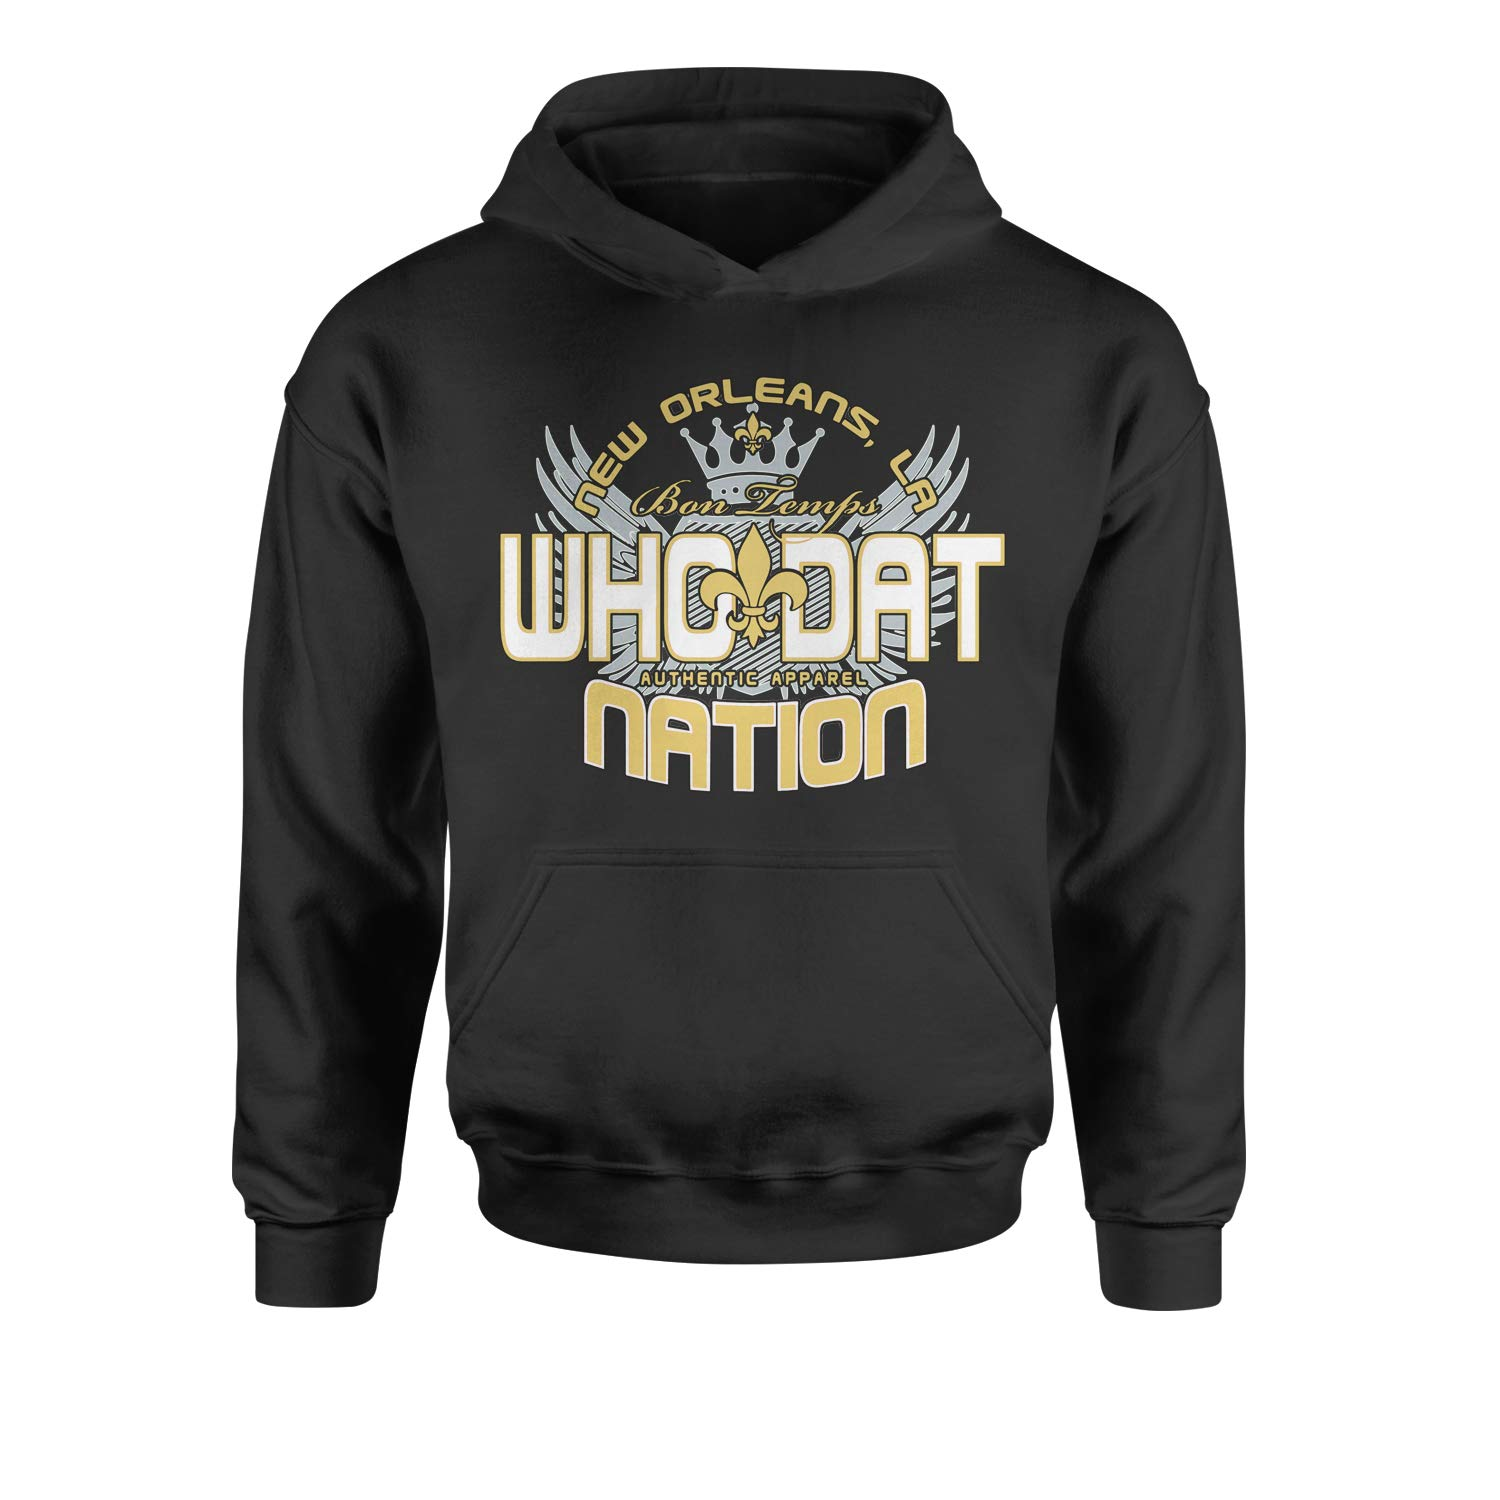 Expression Tees Who Dat Nation New Orleans Youth-Sized Hoodie Color